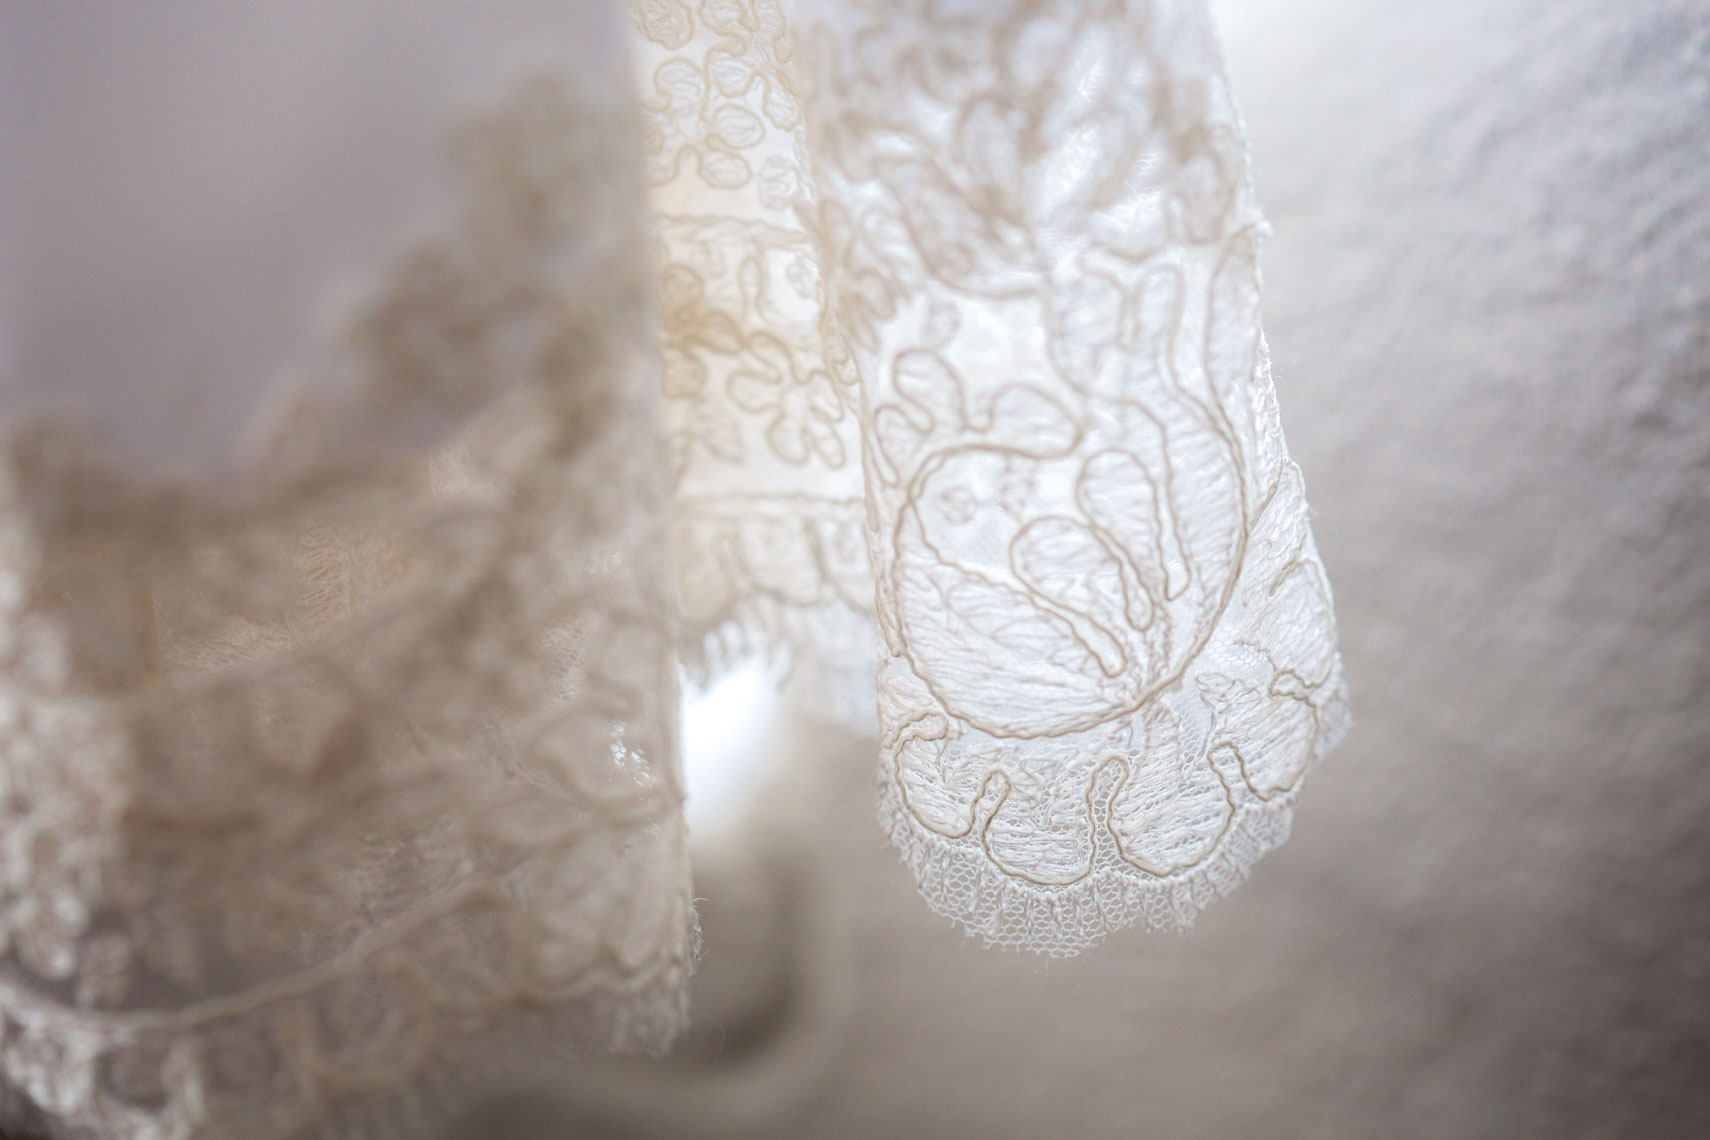 Wedding dress texture closeup detail at wedding destination photography